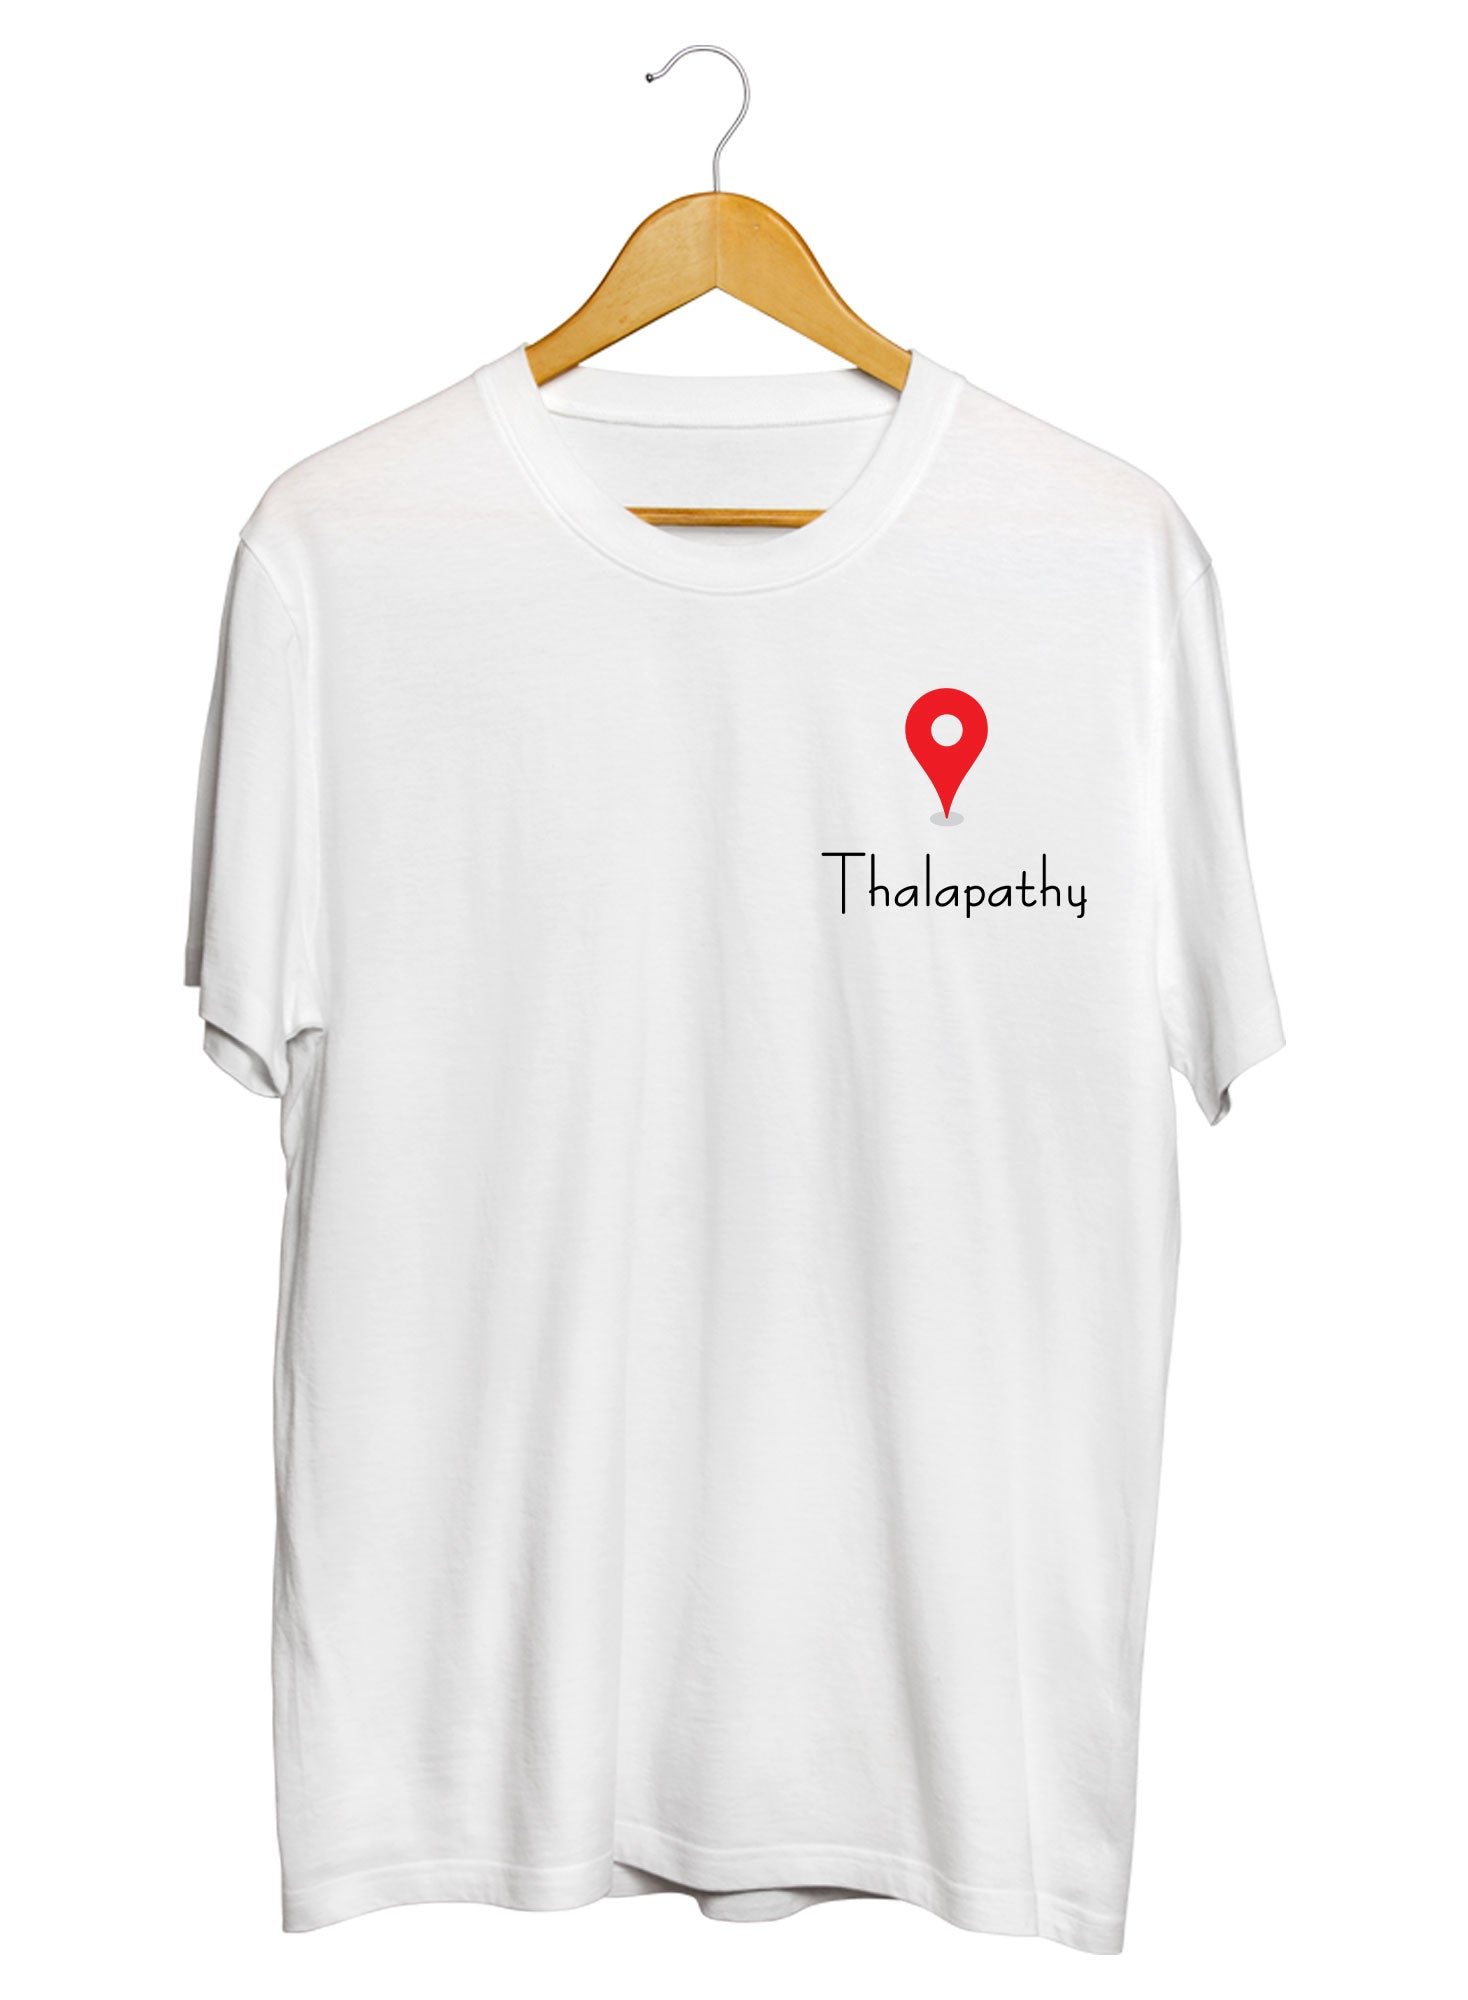 Thalapathy Love T-shirt - TrendTones